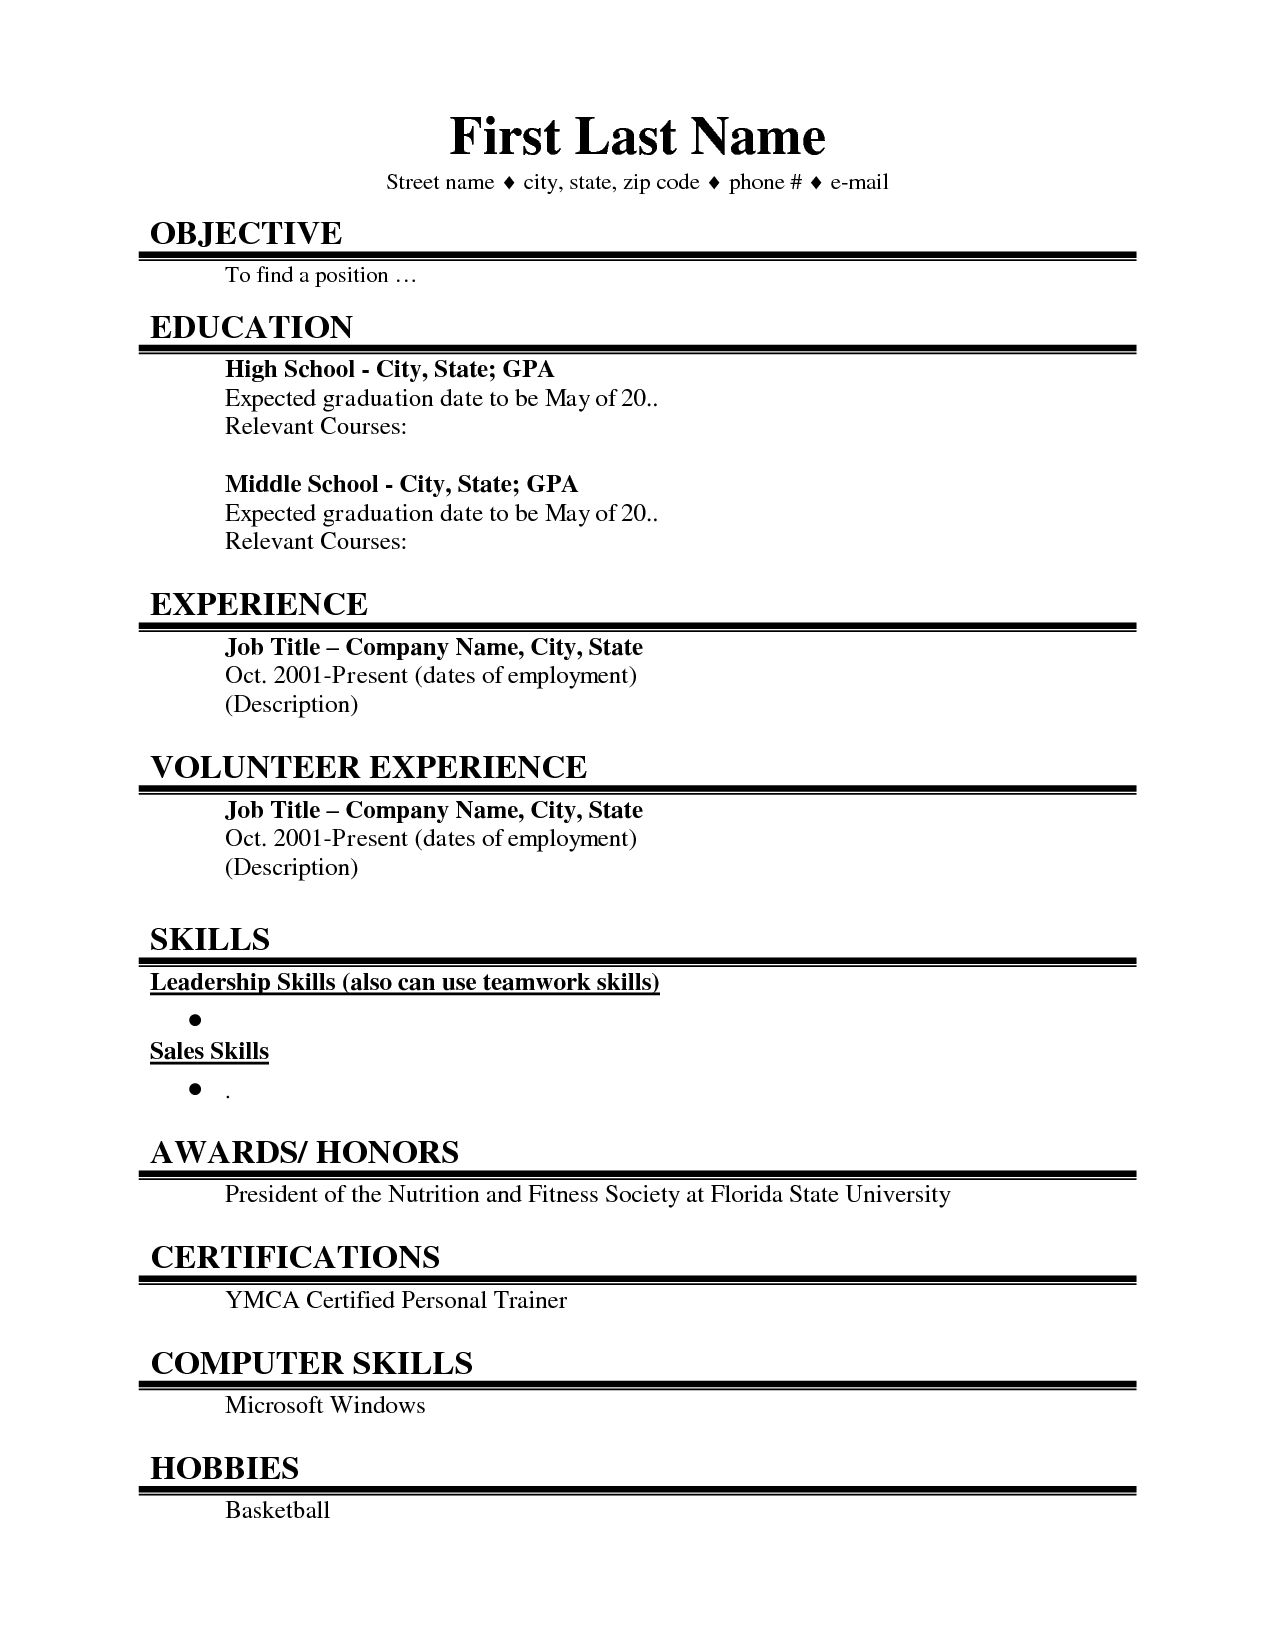 resume example for first job - Good Resume For First Job